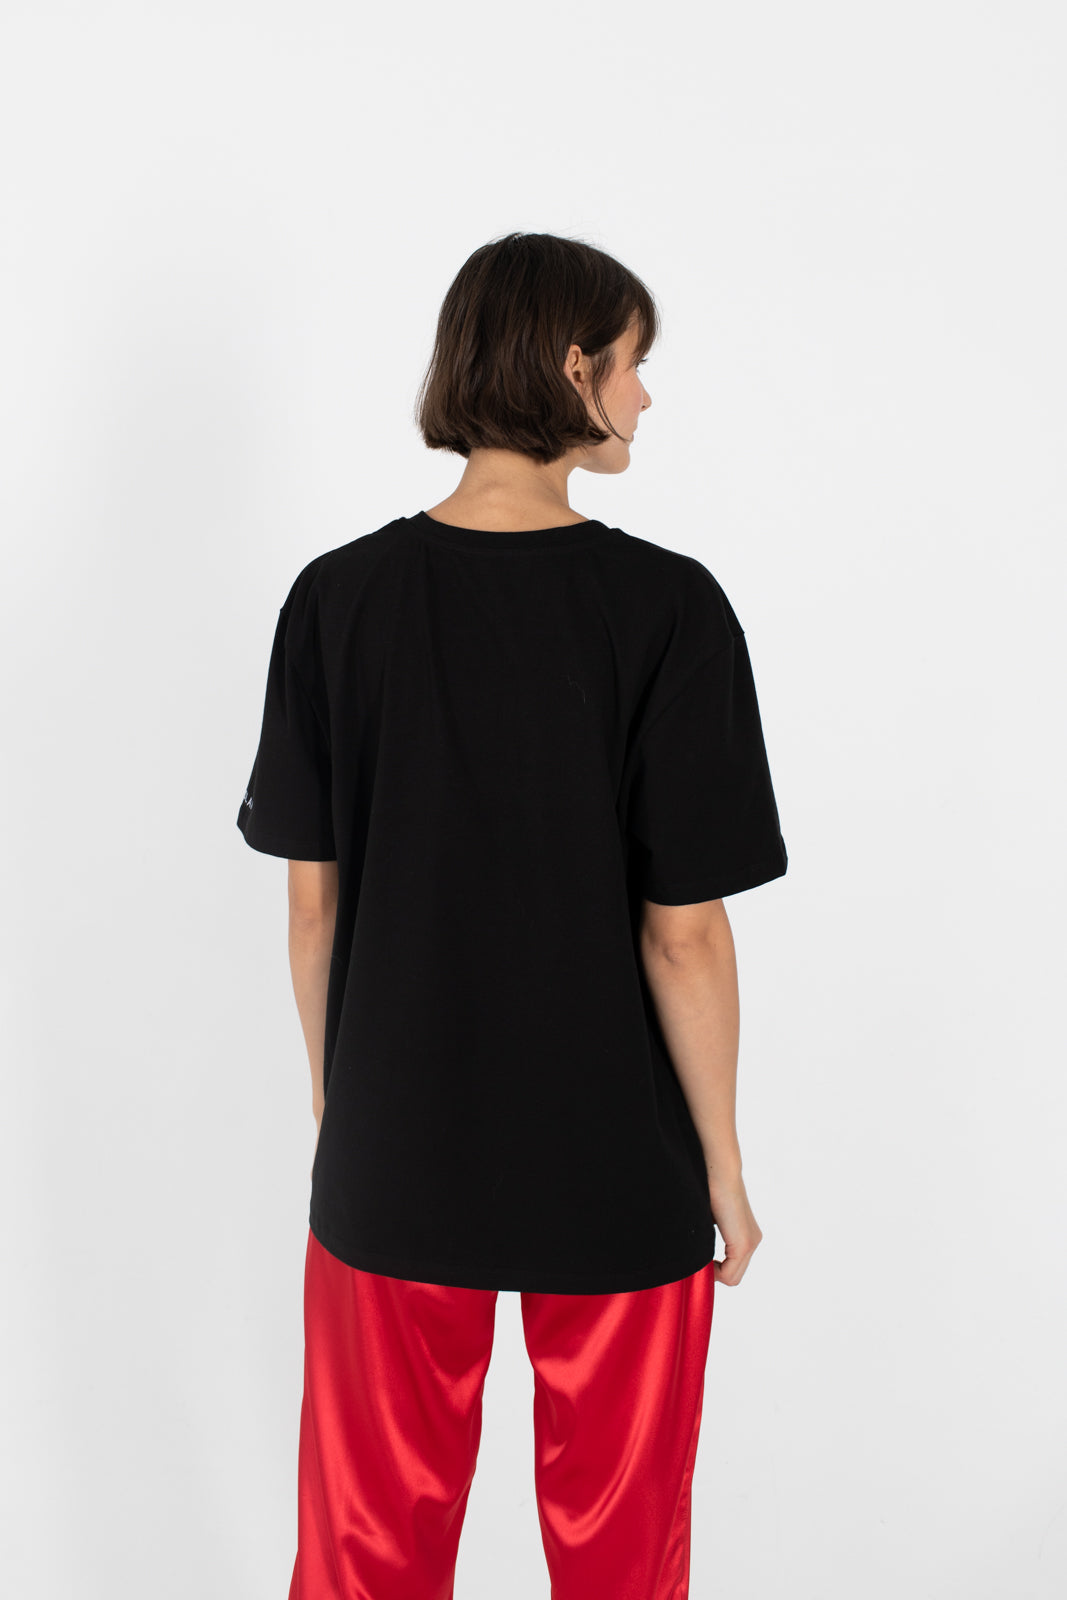 le-slap-logo-tshirt-oversize-black-red-pants-photoshoot.jpg